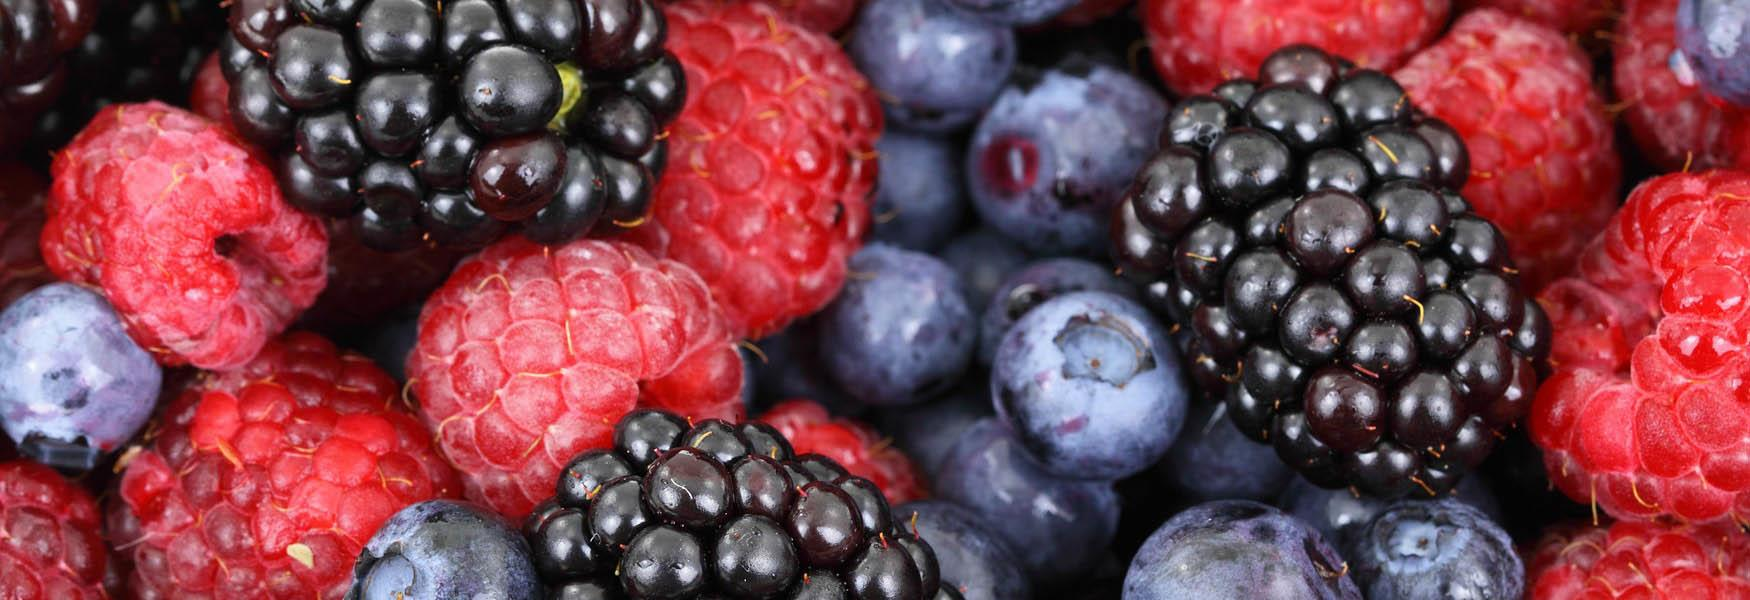 Locally produced fruit